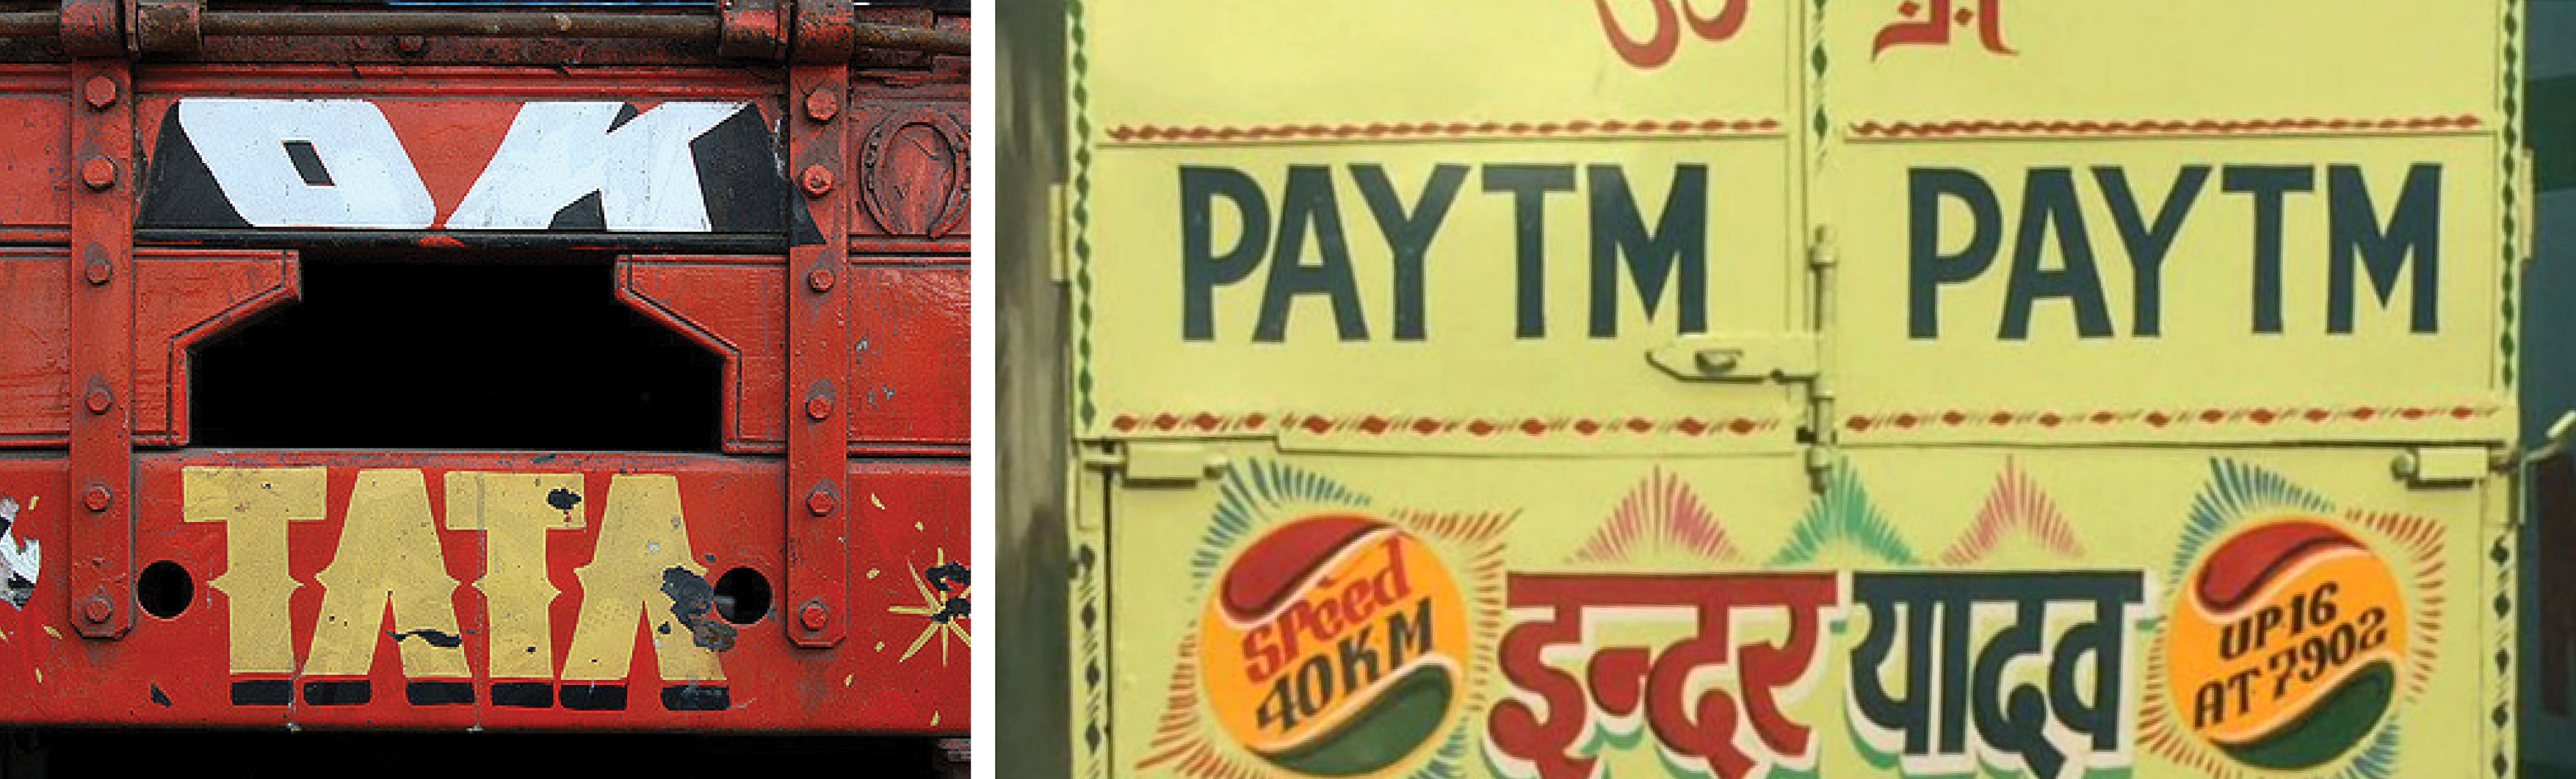 Is Paytm becoming the new 'OK Tata' of India?